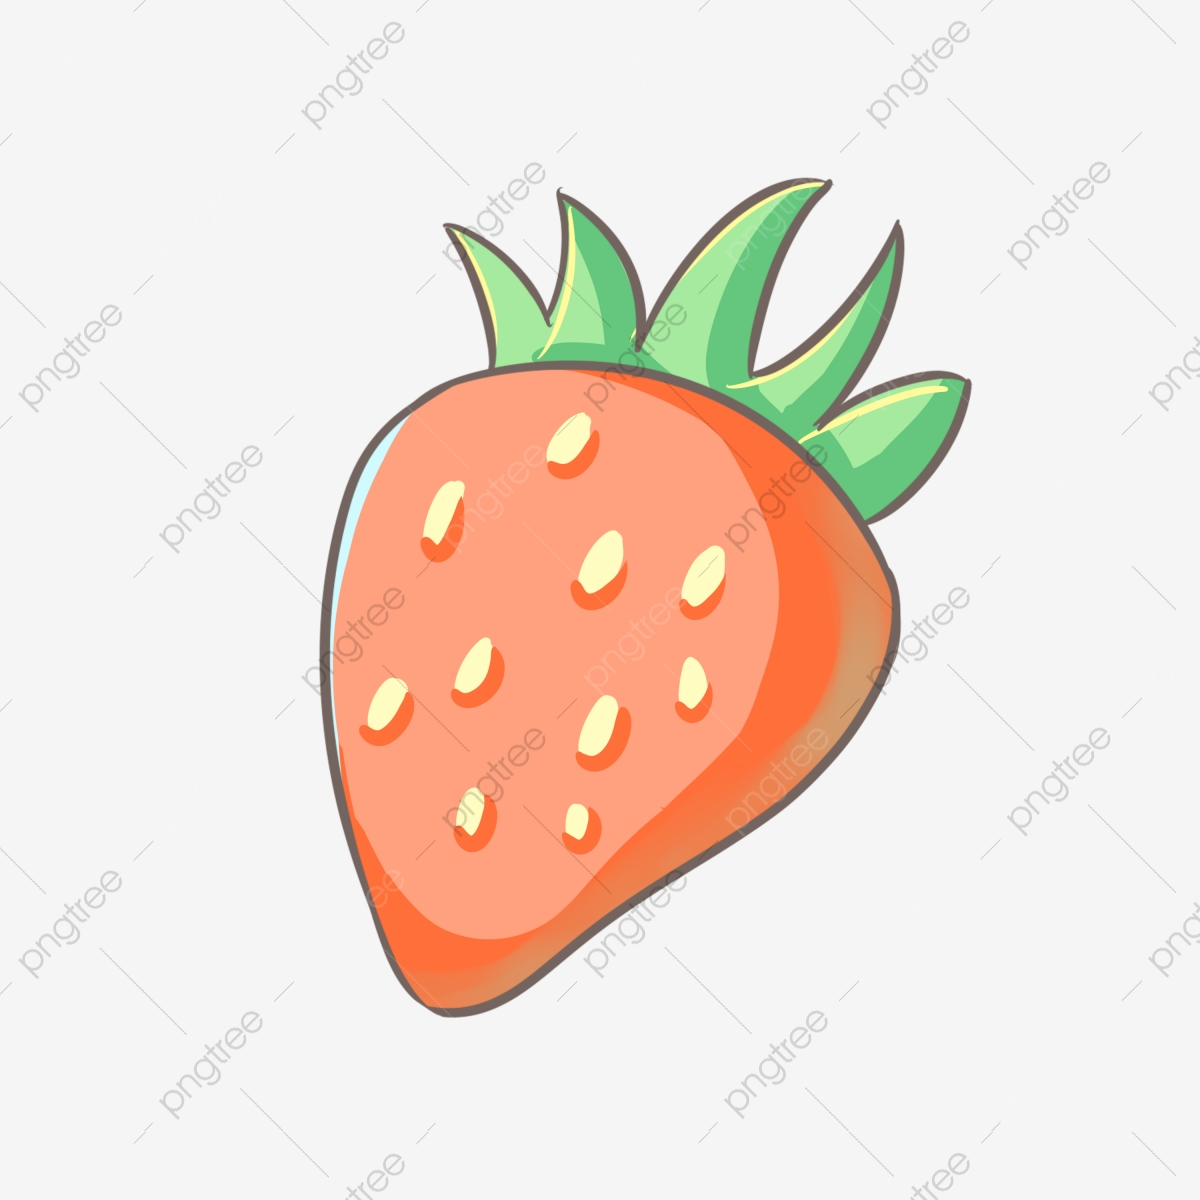 Strawberry Cartoon Png Vector Psd And Clipart With Transparent Background For Free Download Pngtree